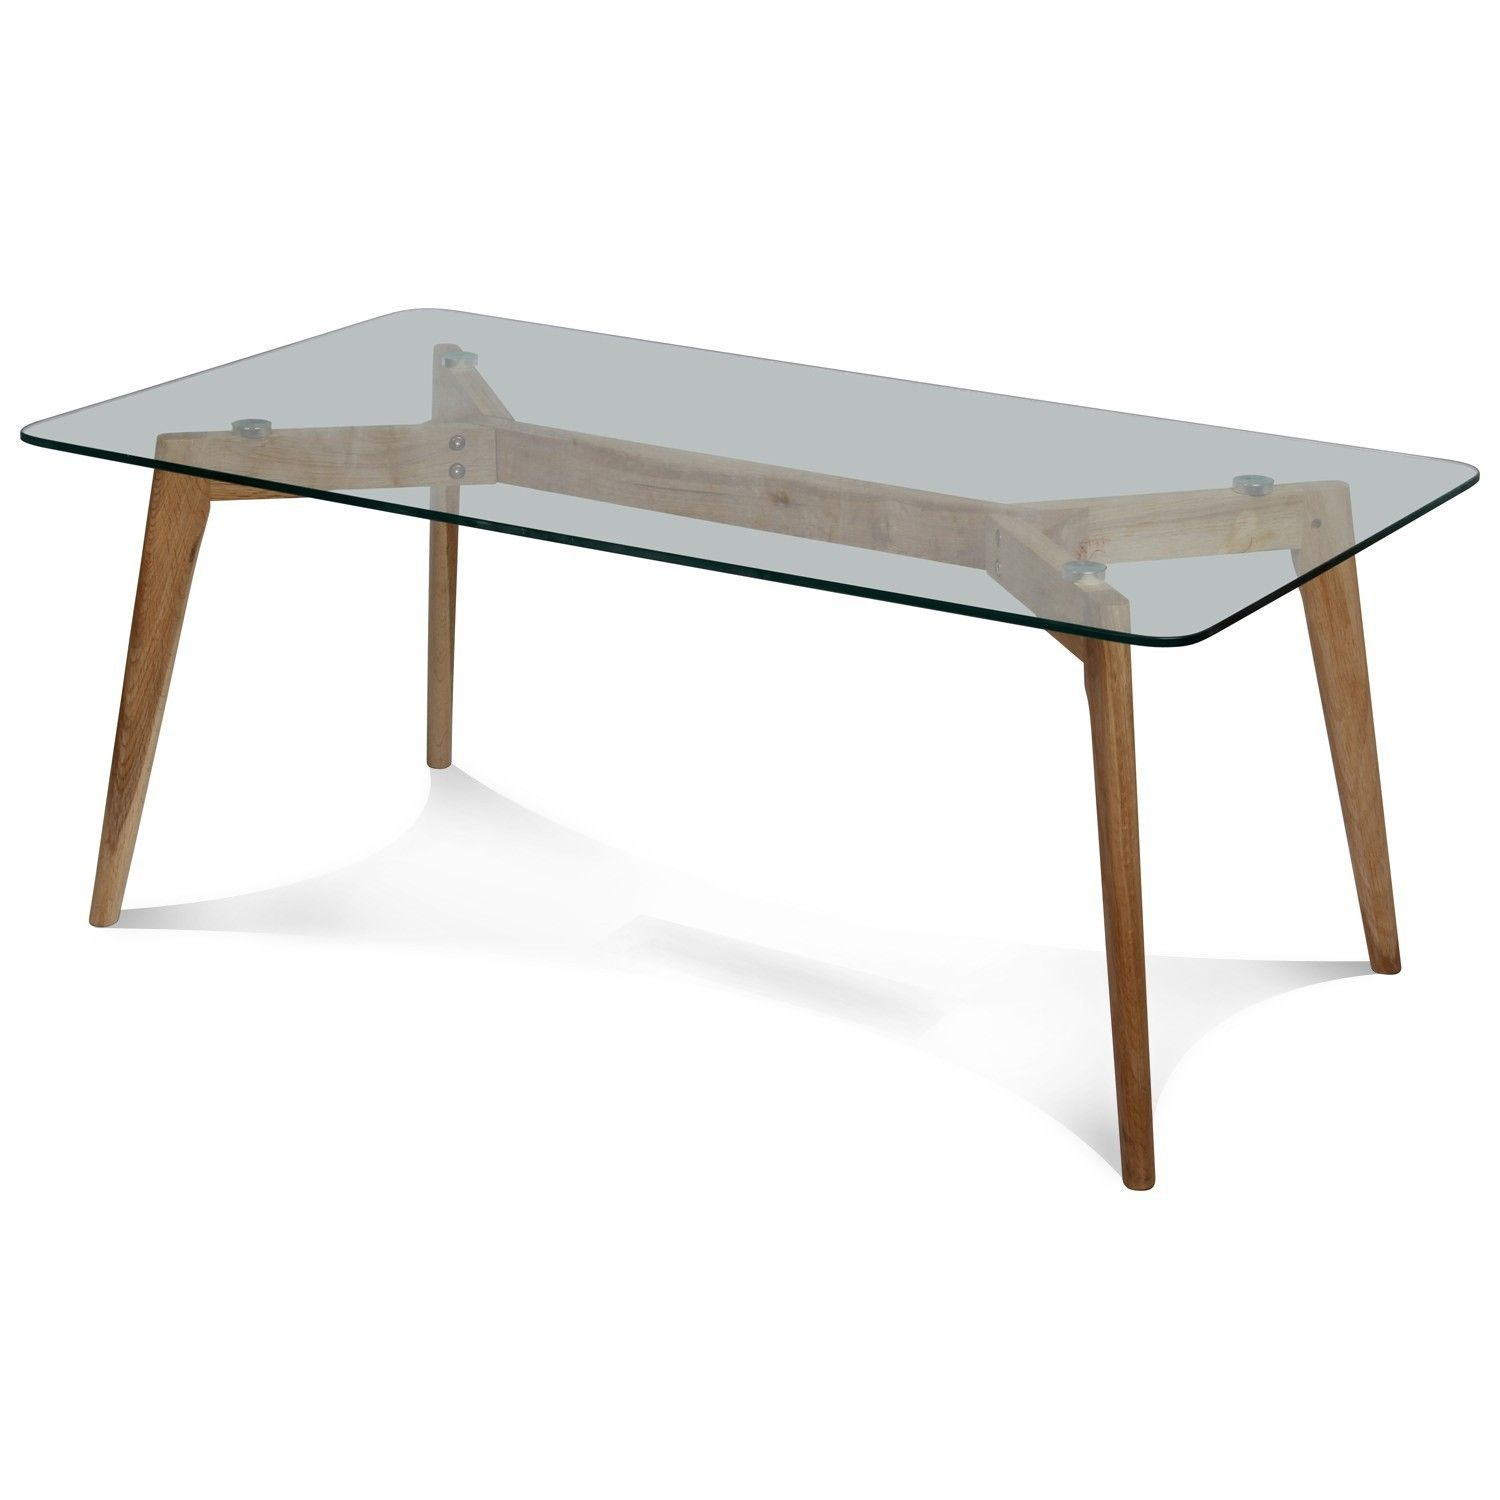 Table Basse Bois Verre Design Table Basse Design Verre Et Bois Scandinave Fiord L 110xp 60xh